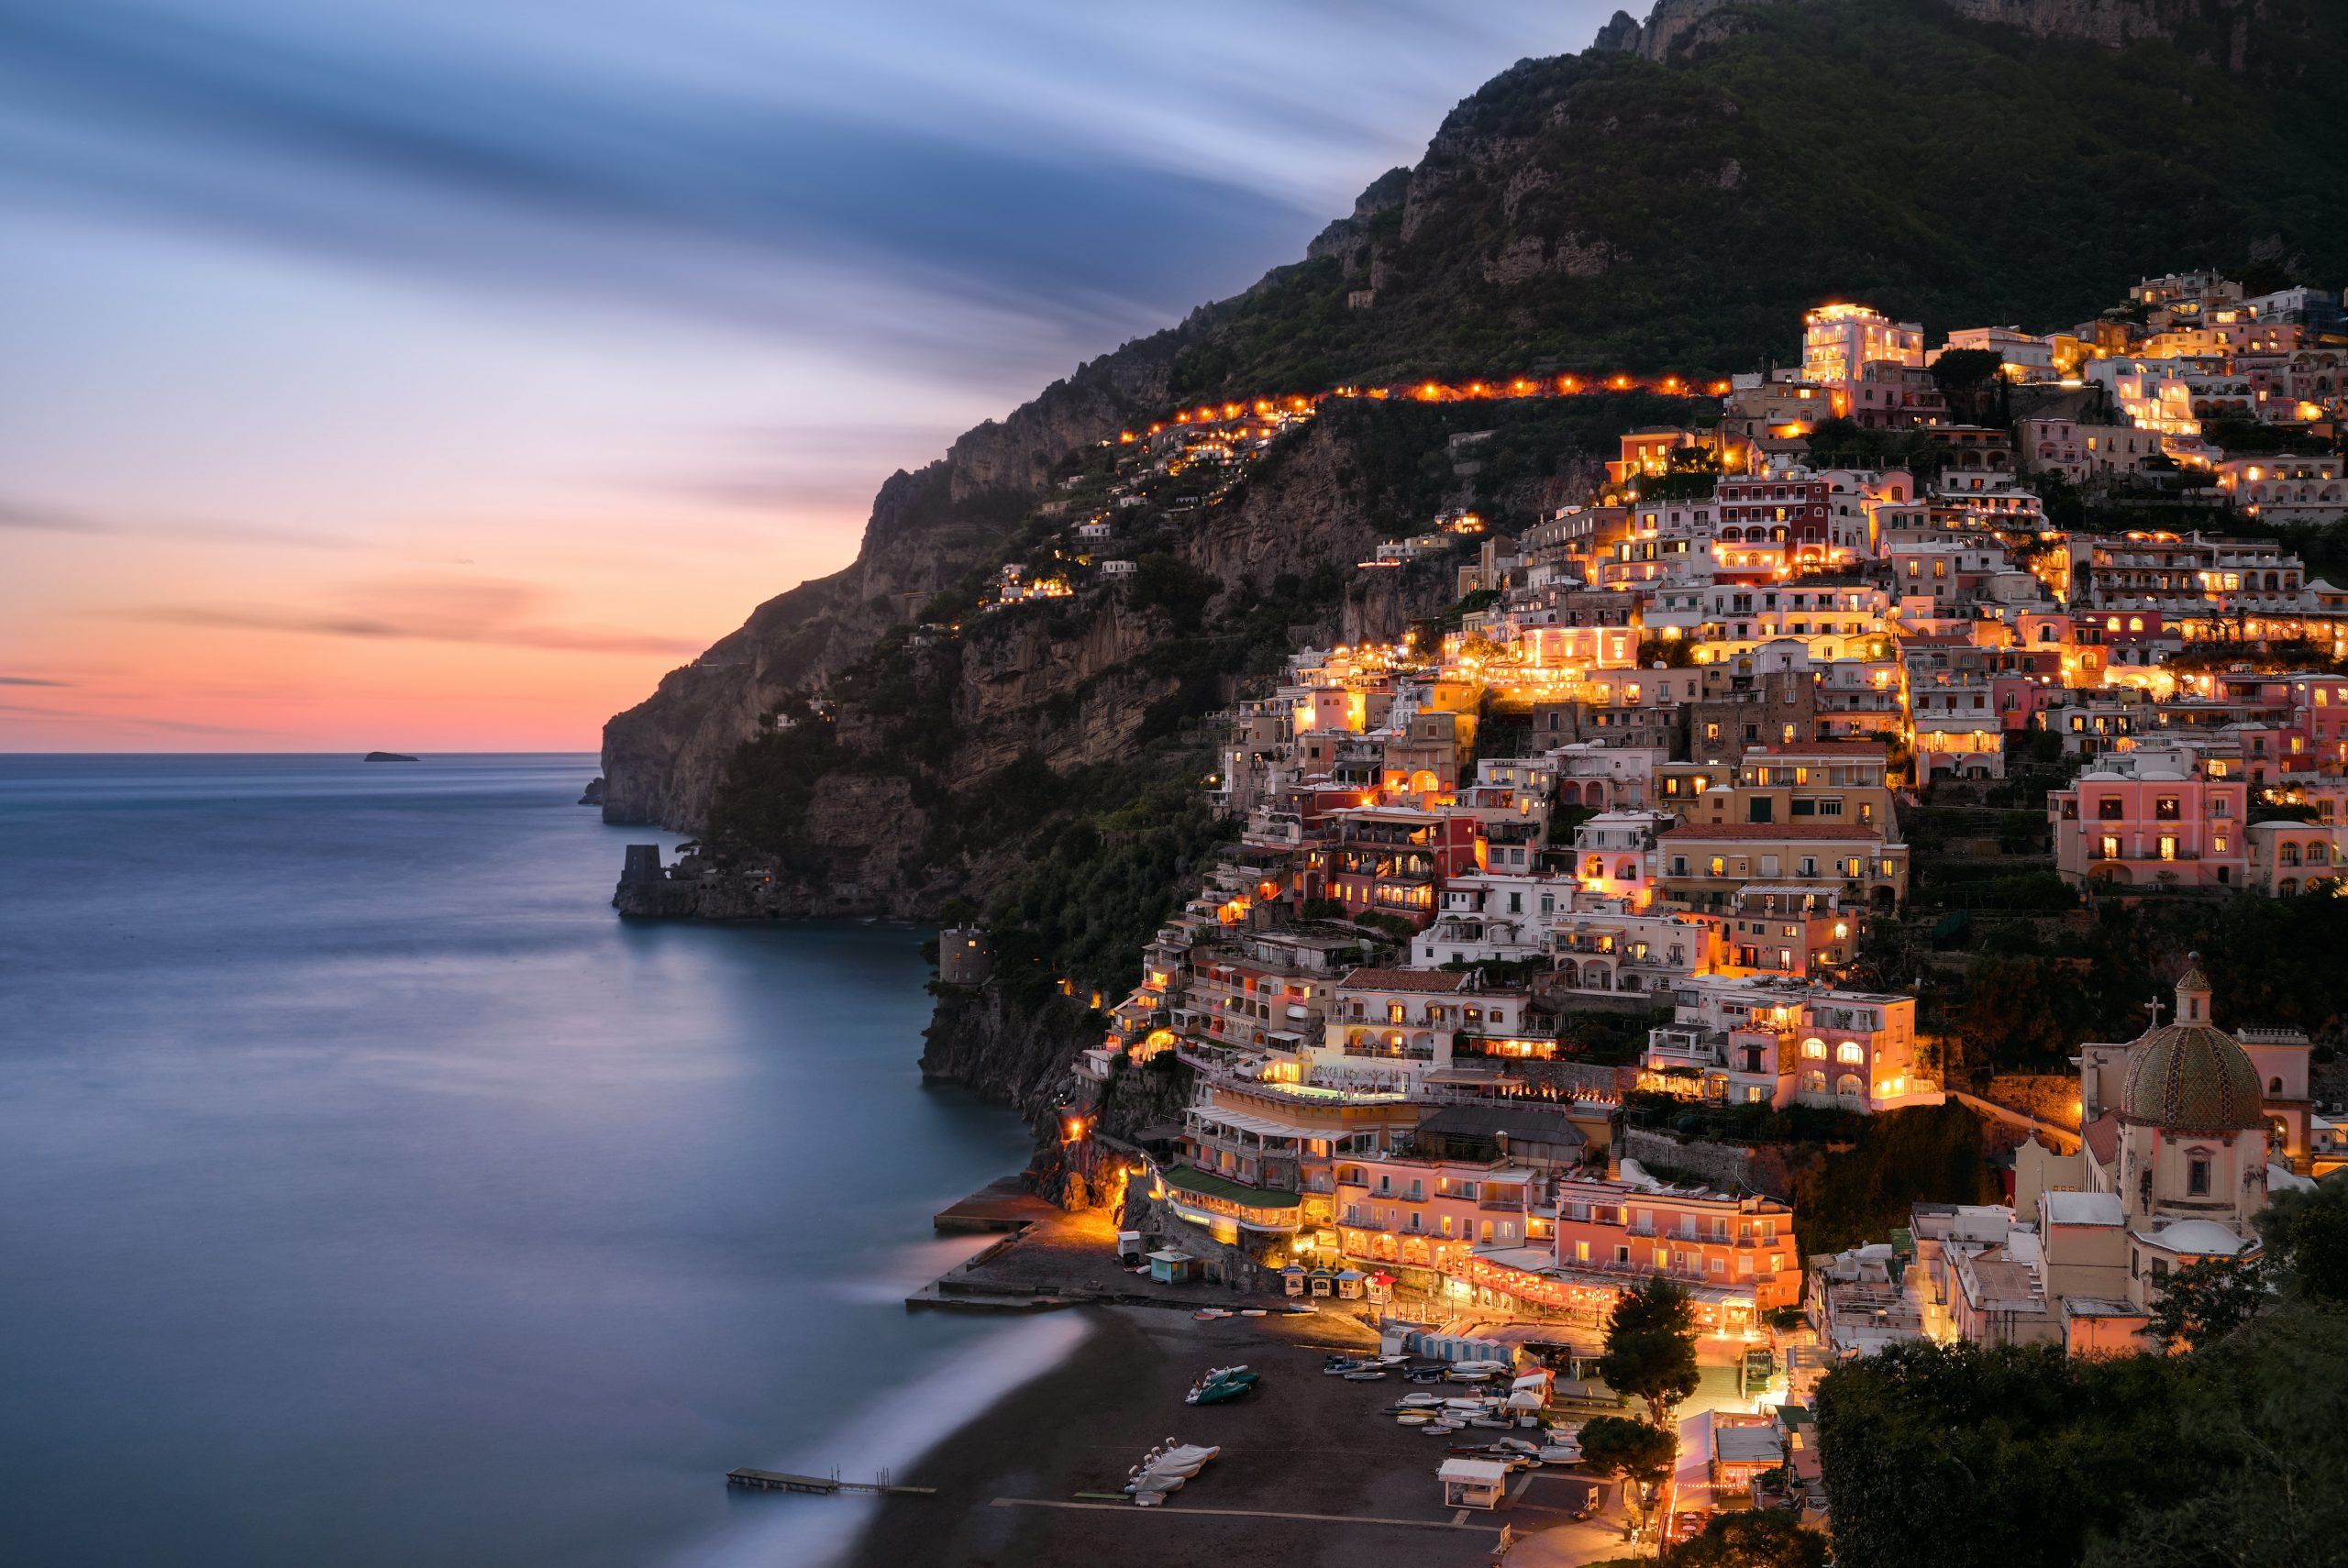 Positano charming city on Amalfi coast